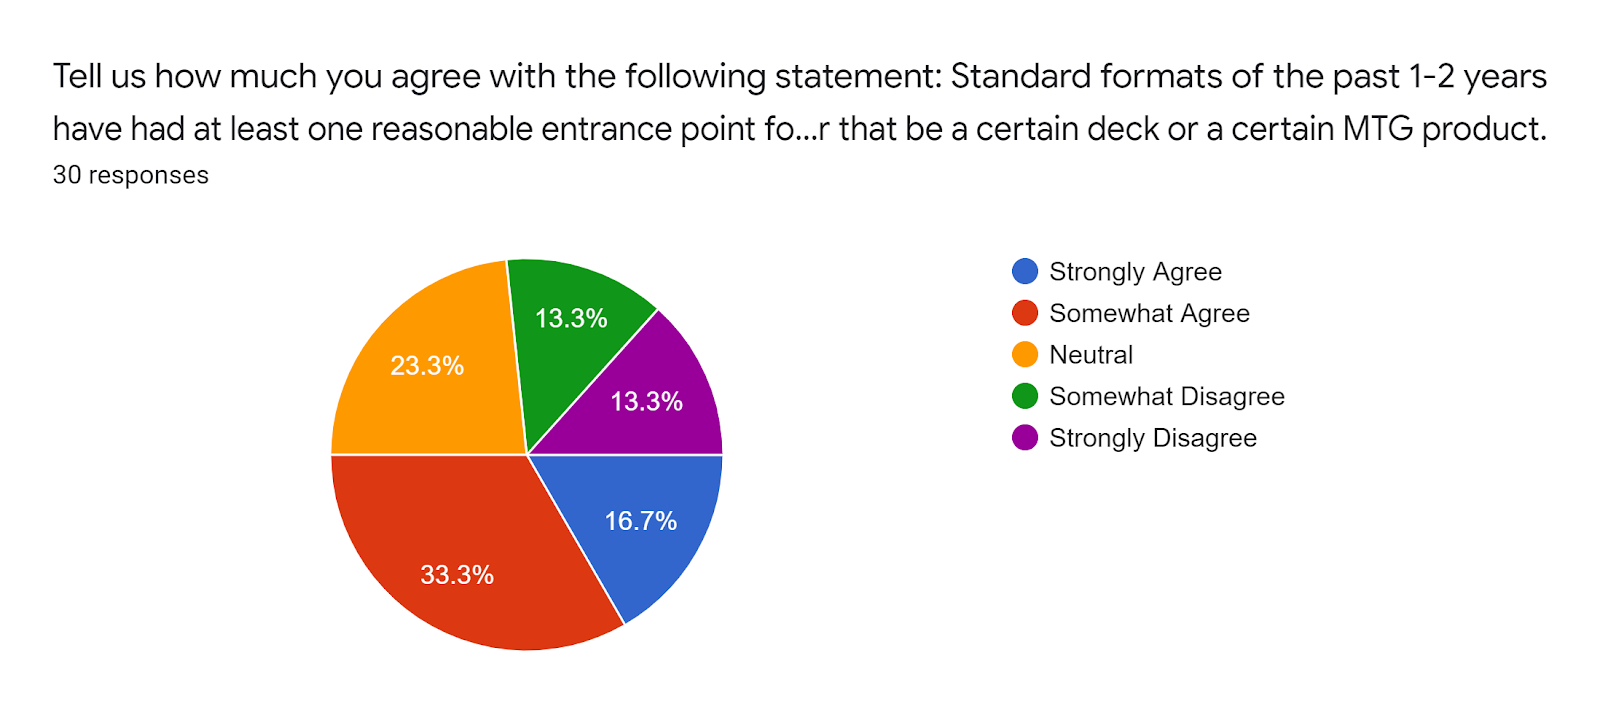 Forms response chart Question title Tell us how much you agree with the following statement Standard formats of the past 1-2 years have had at least one reasonable entrance point for new and returning players whether that be a certain deck or a certain MTG product Number of responses 30 responses